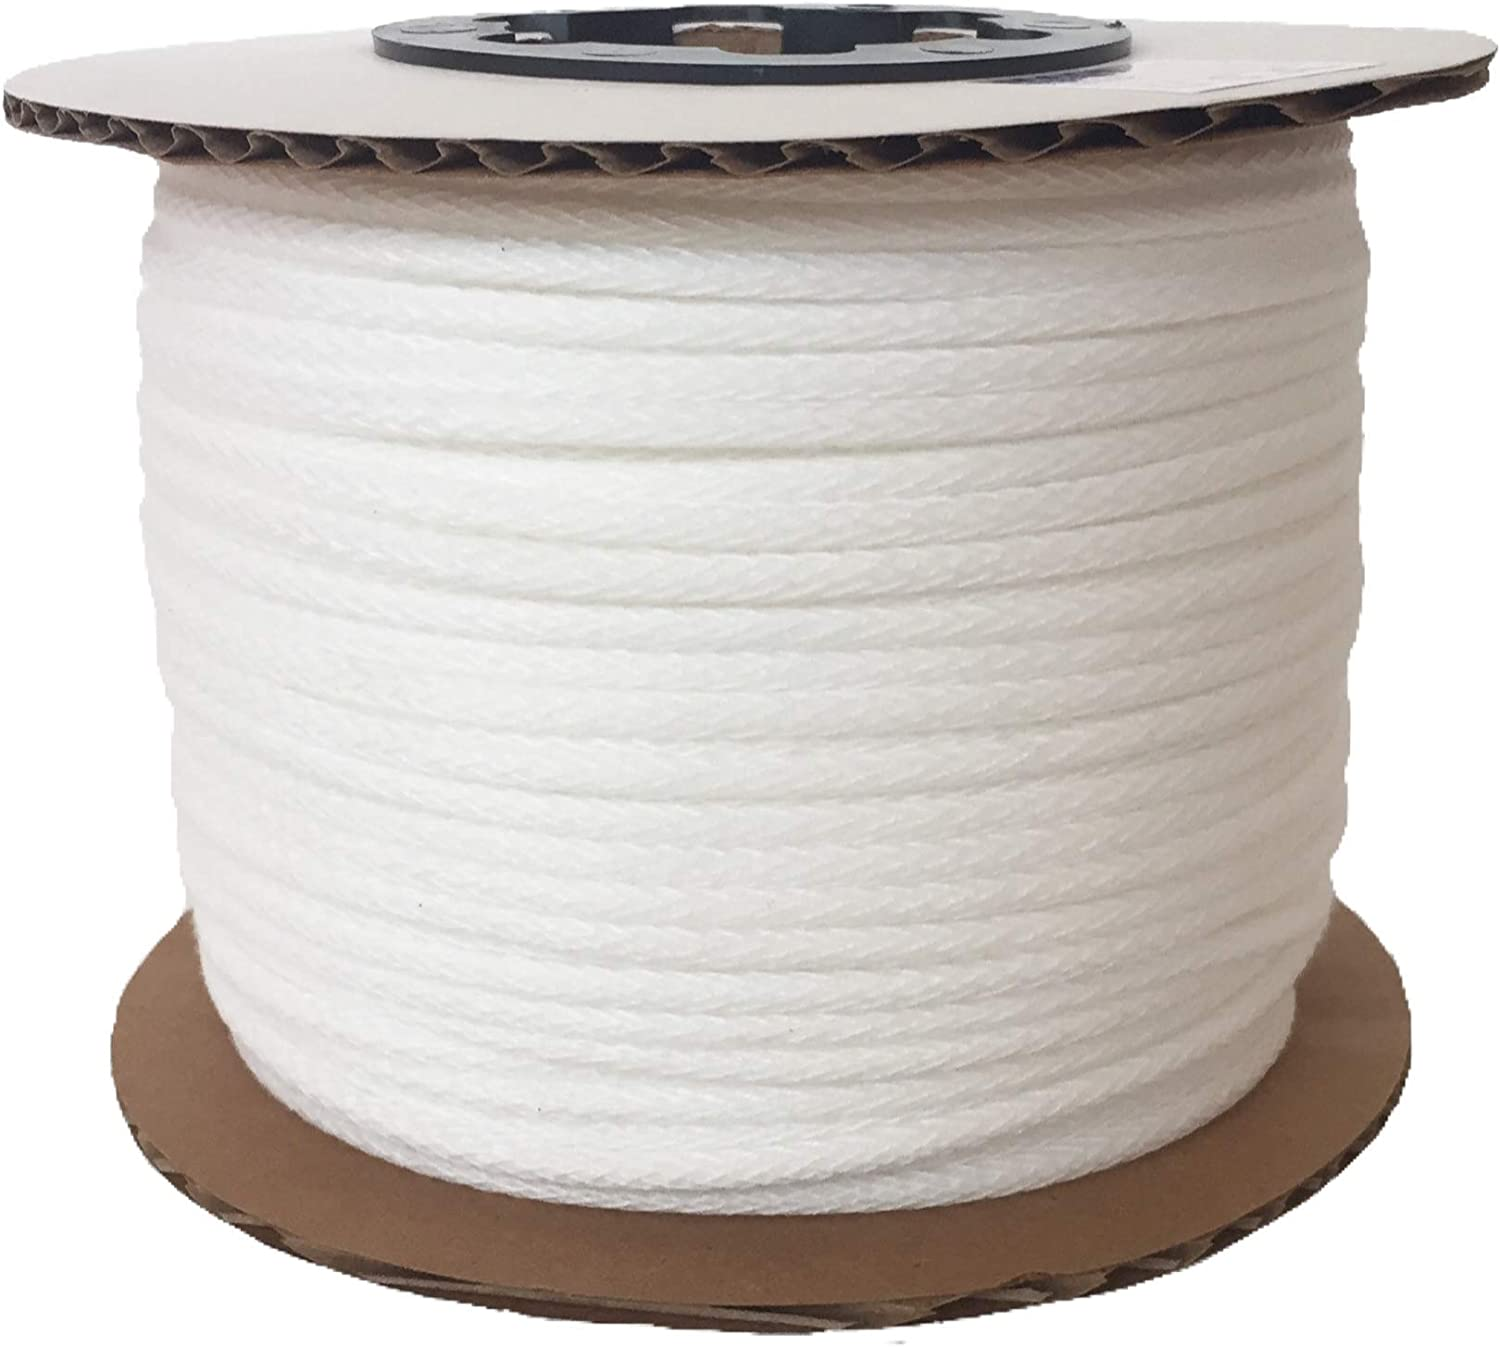 Soft Synthetic Upholstery Welt Cord Braided